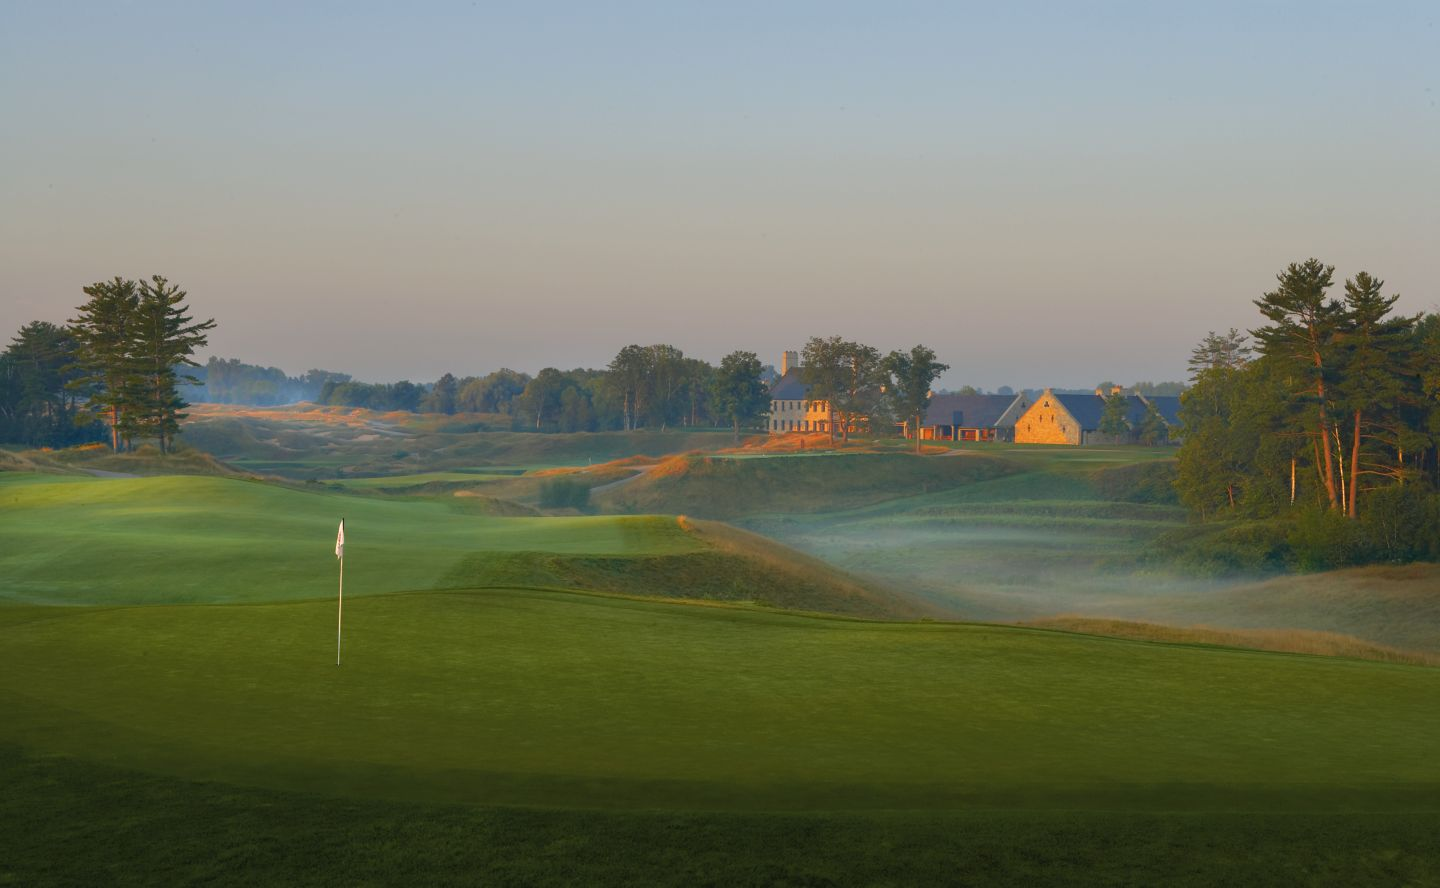 A view from the green of the tenth hole on the Straits course with the Clubhouse in the background.